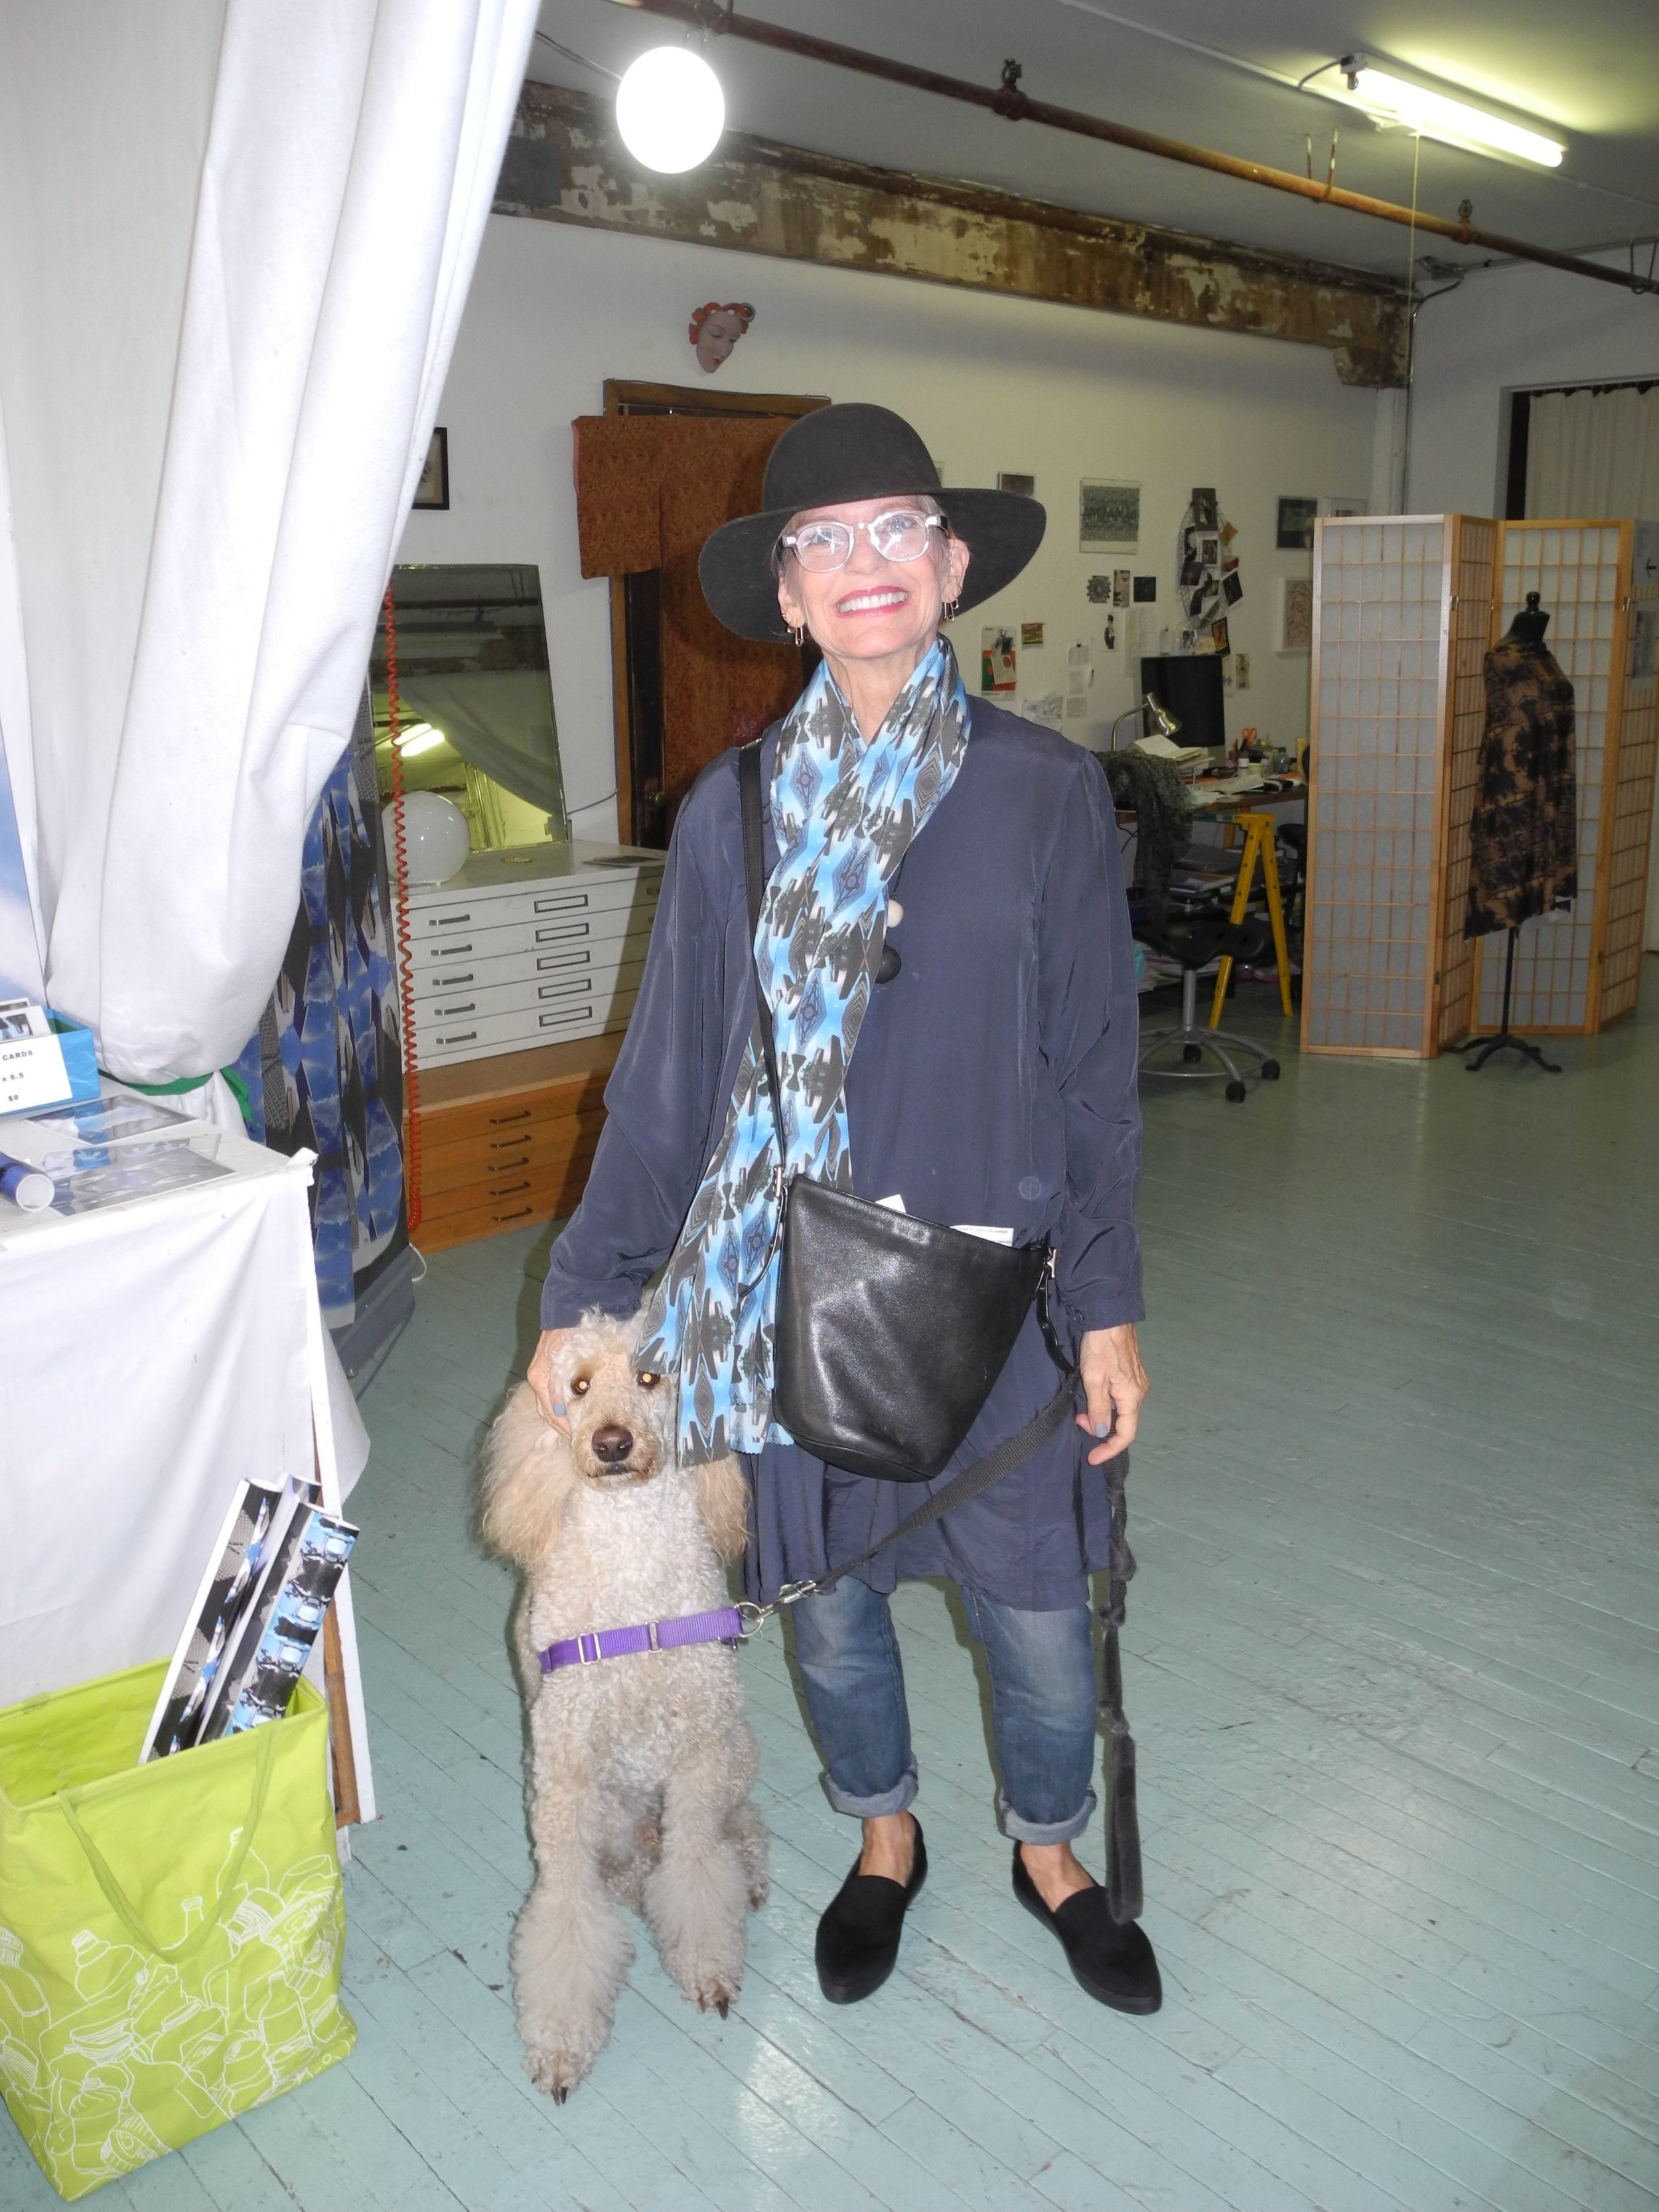 Christina wth her poodle_at_Janice_Everett_studio.jpg